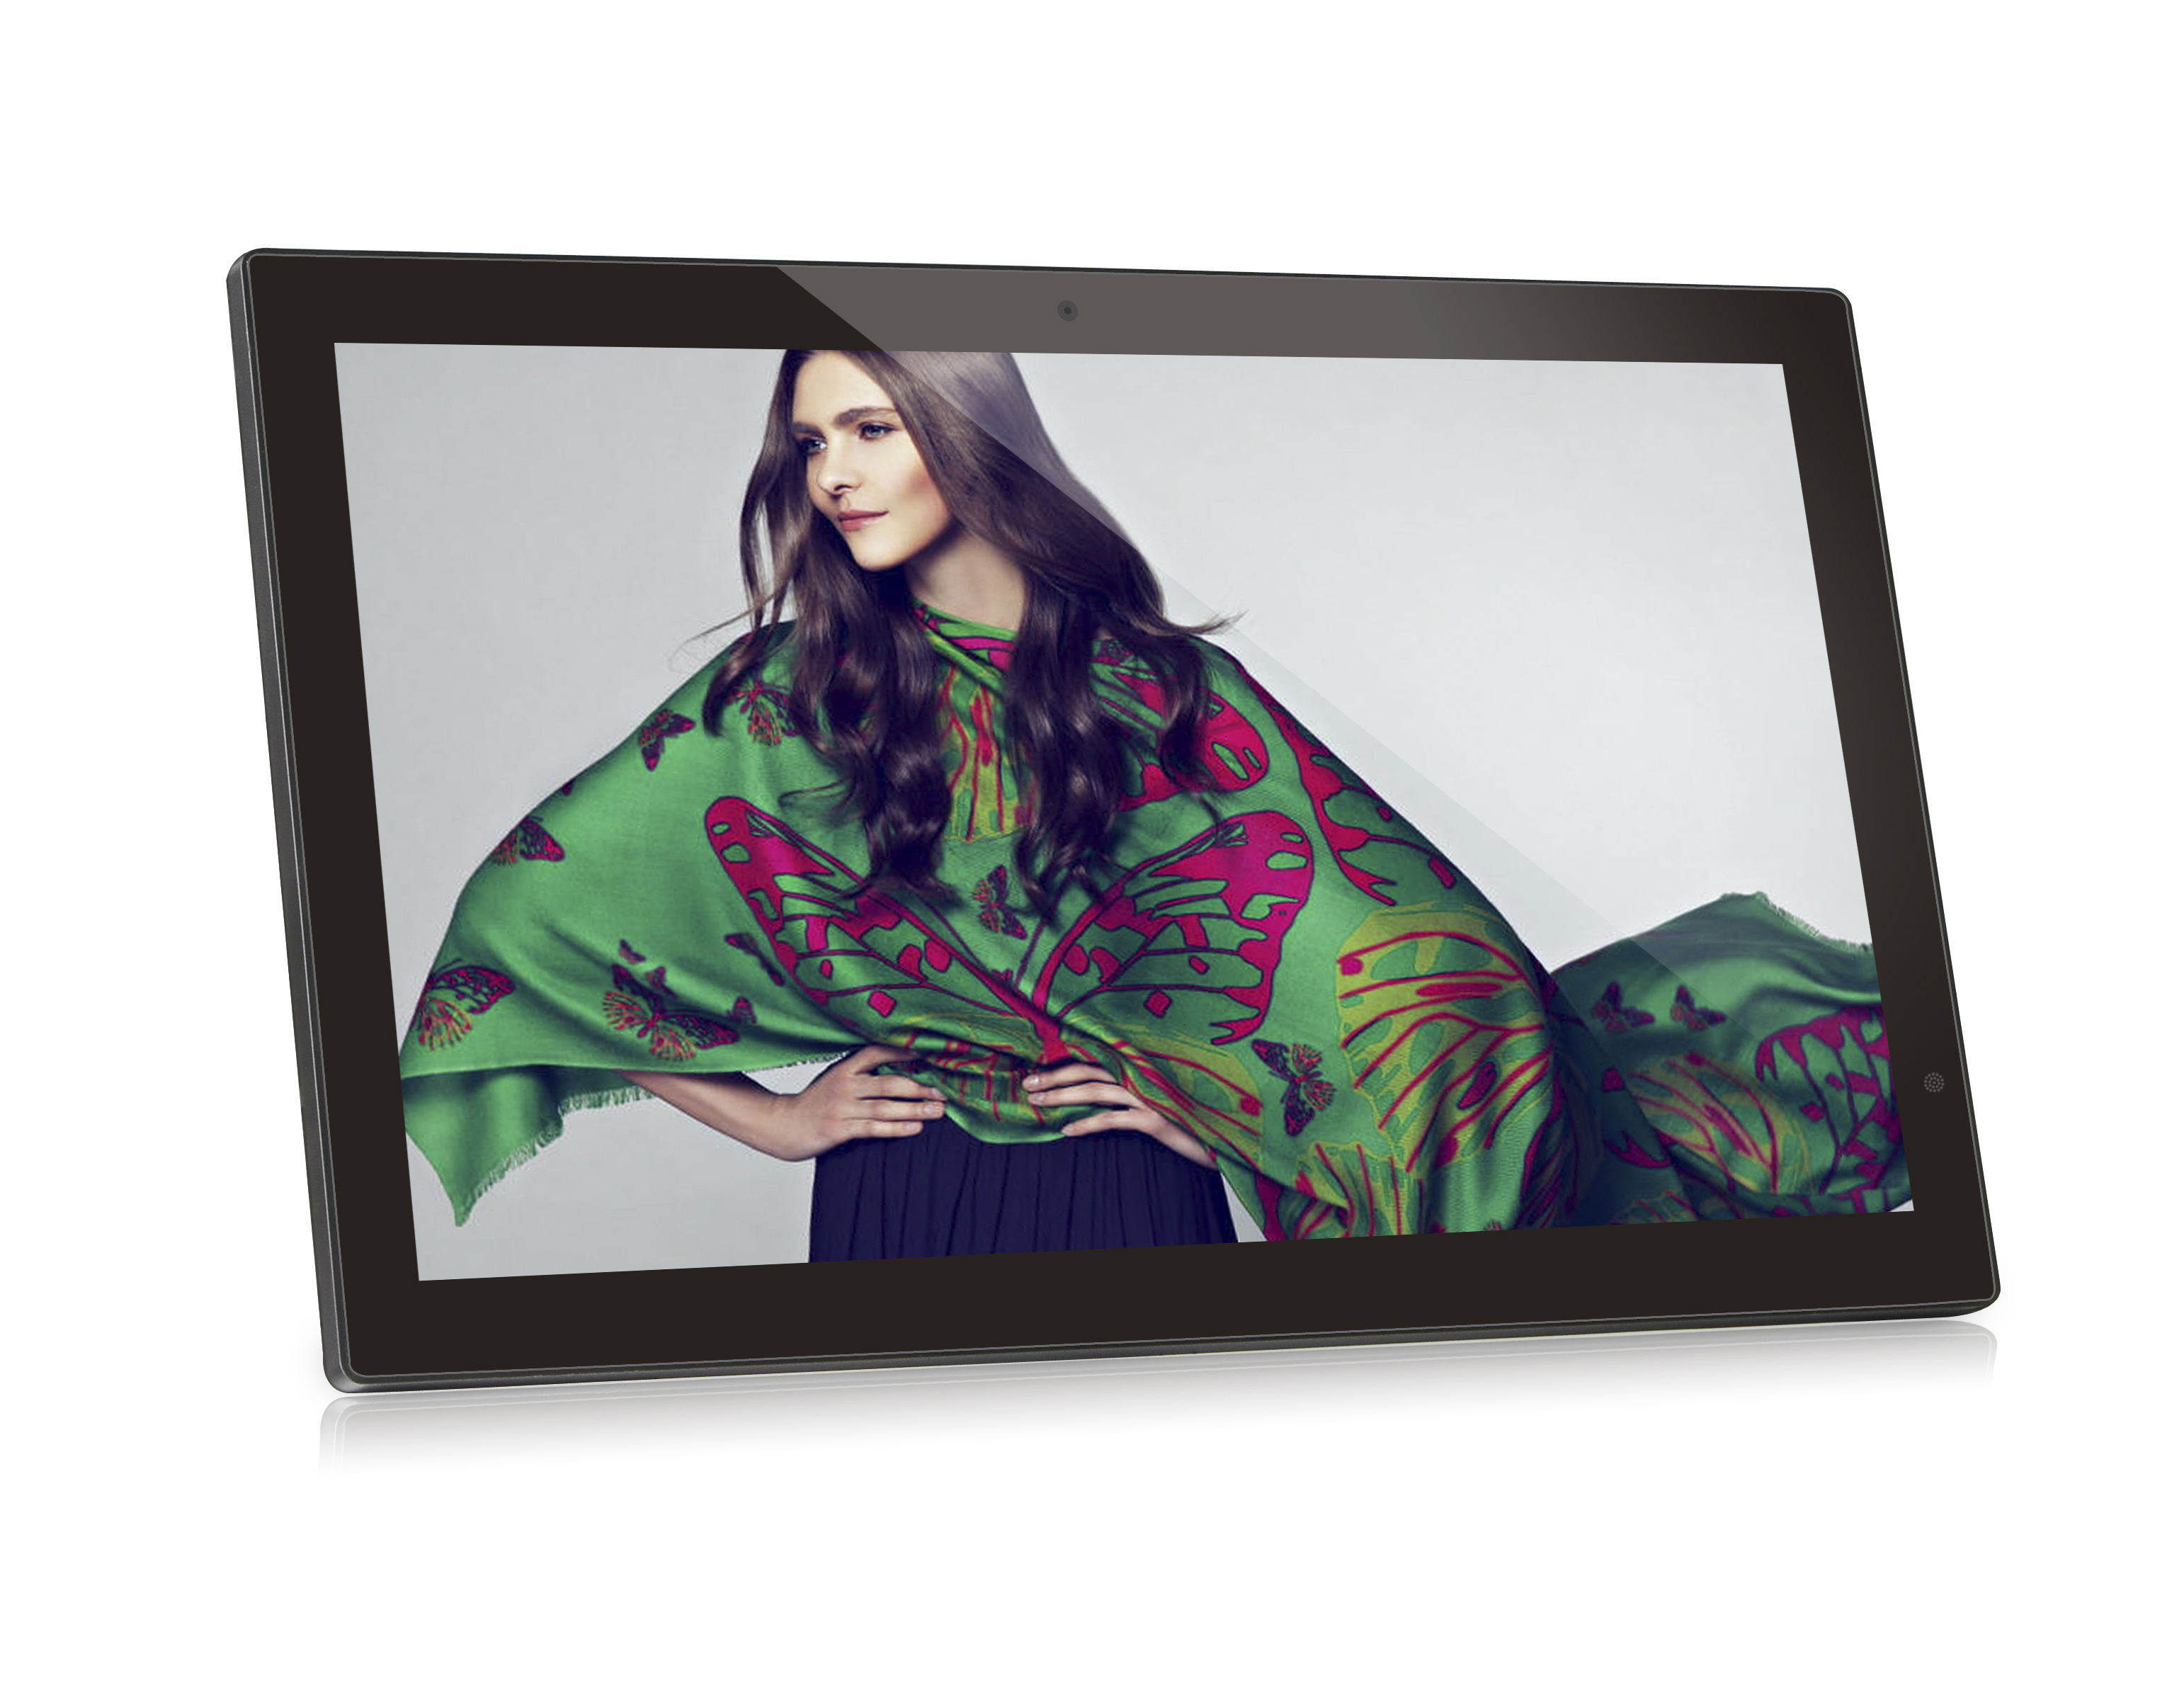 21.5 inch OEM LCD Touch Screen Monitor Manufacturers Capacitive Touch Commercial Display MSTV59 Controller